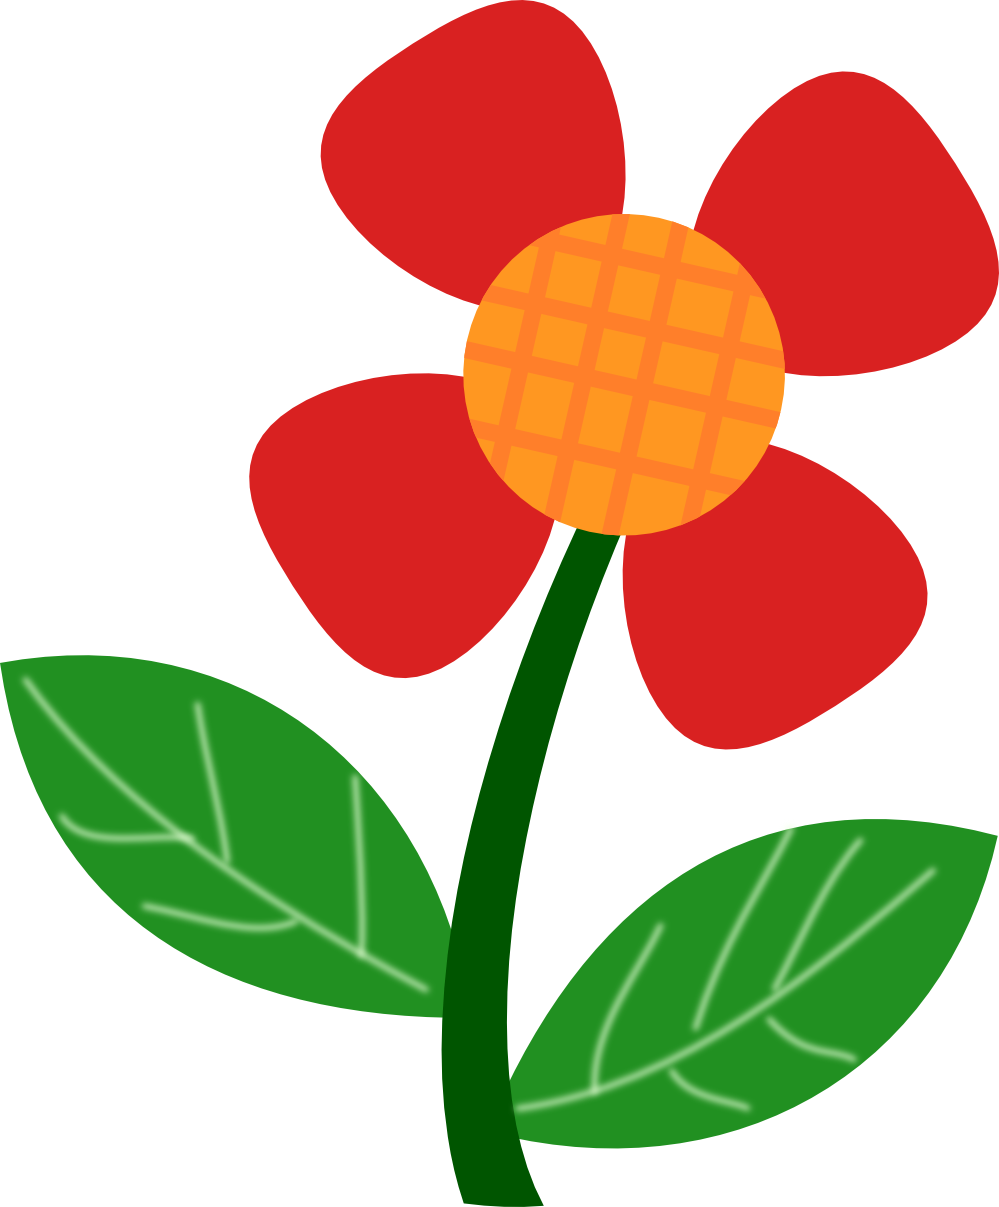 Flower Clipart | Clipart Panda - Free Clipart Images